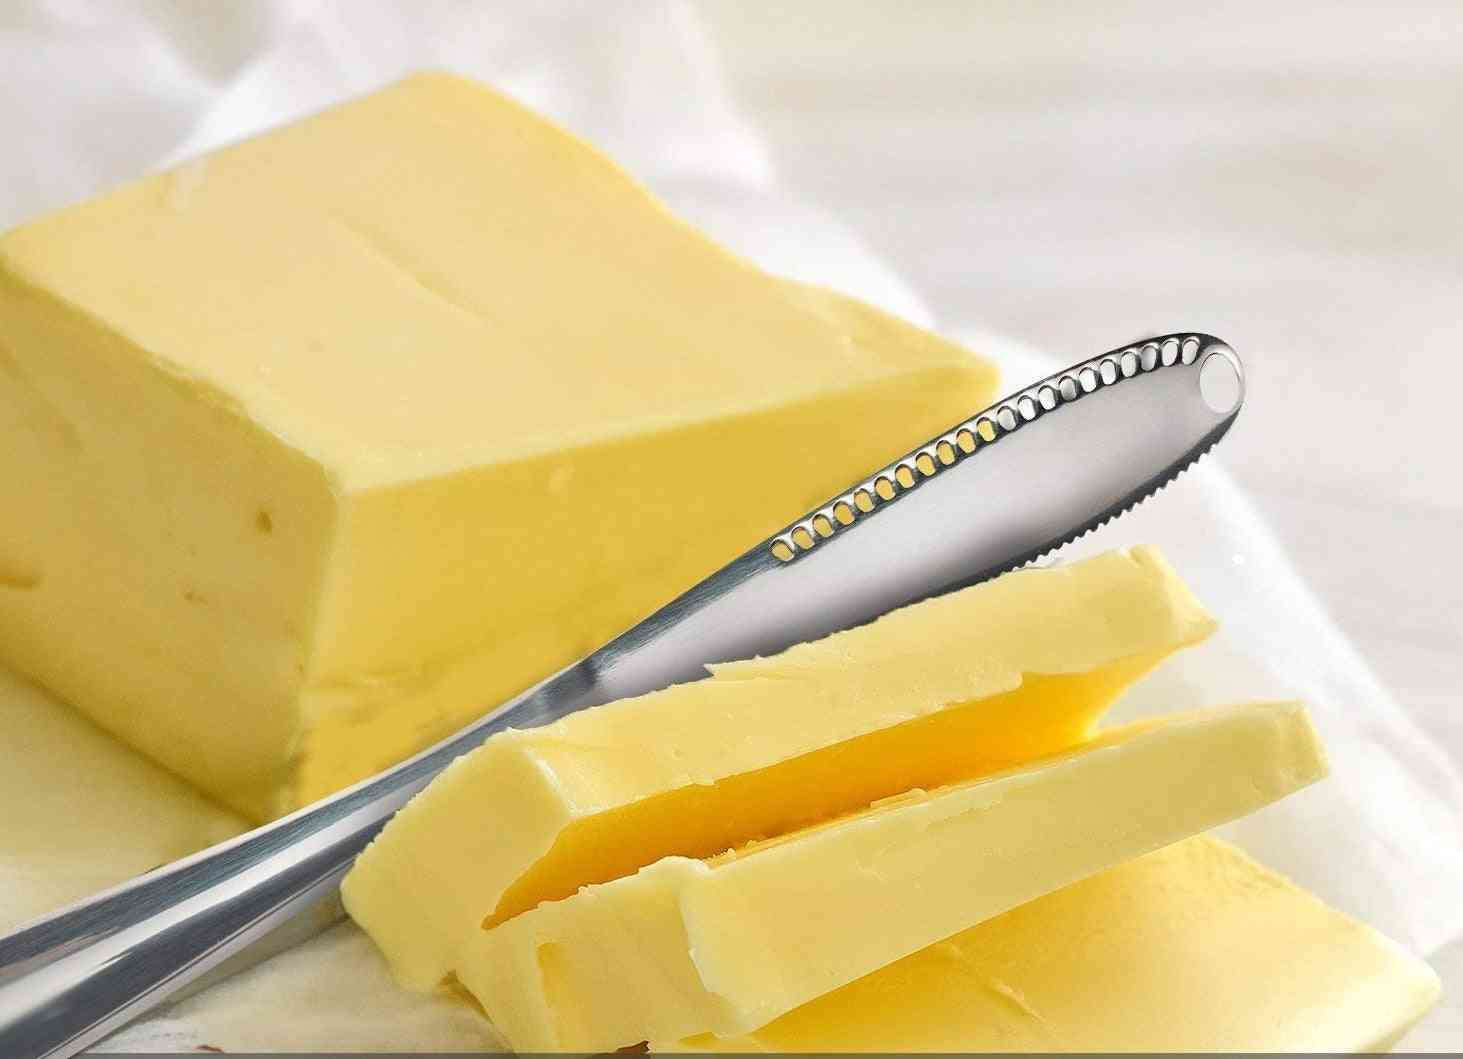 Multifunction Stainless Steel Butter Knife